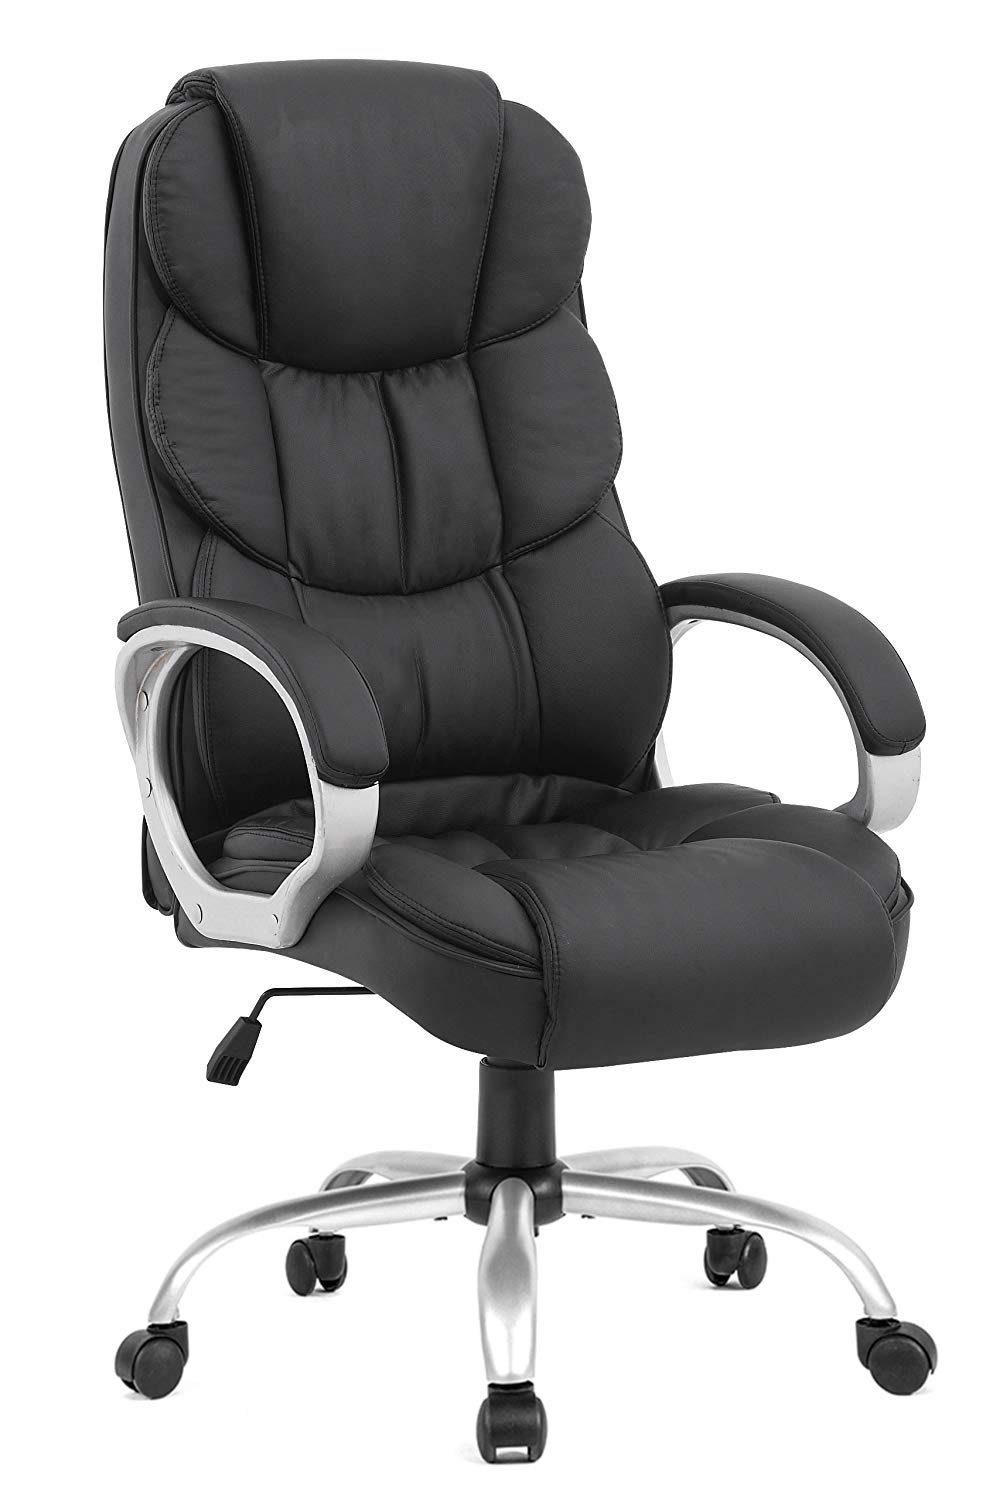 BestOffice Office Chair Desk, Black - Executive Chairs